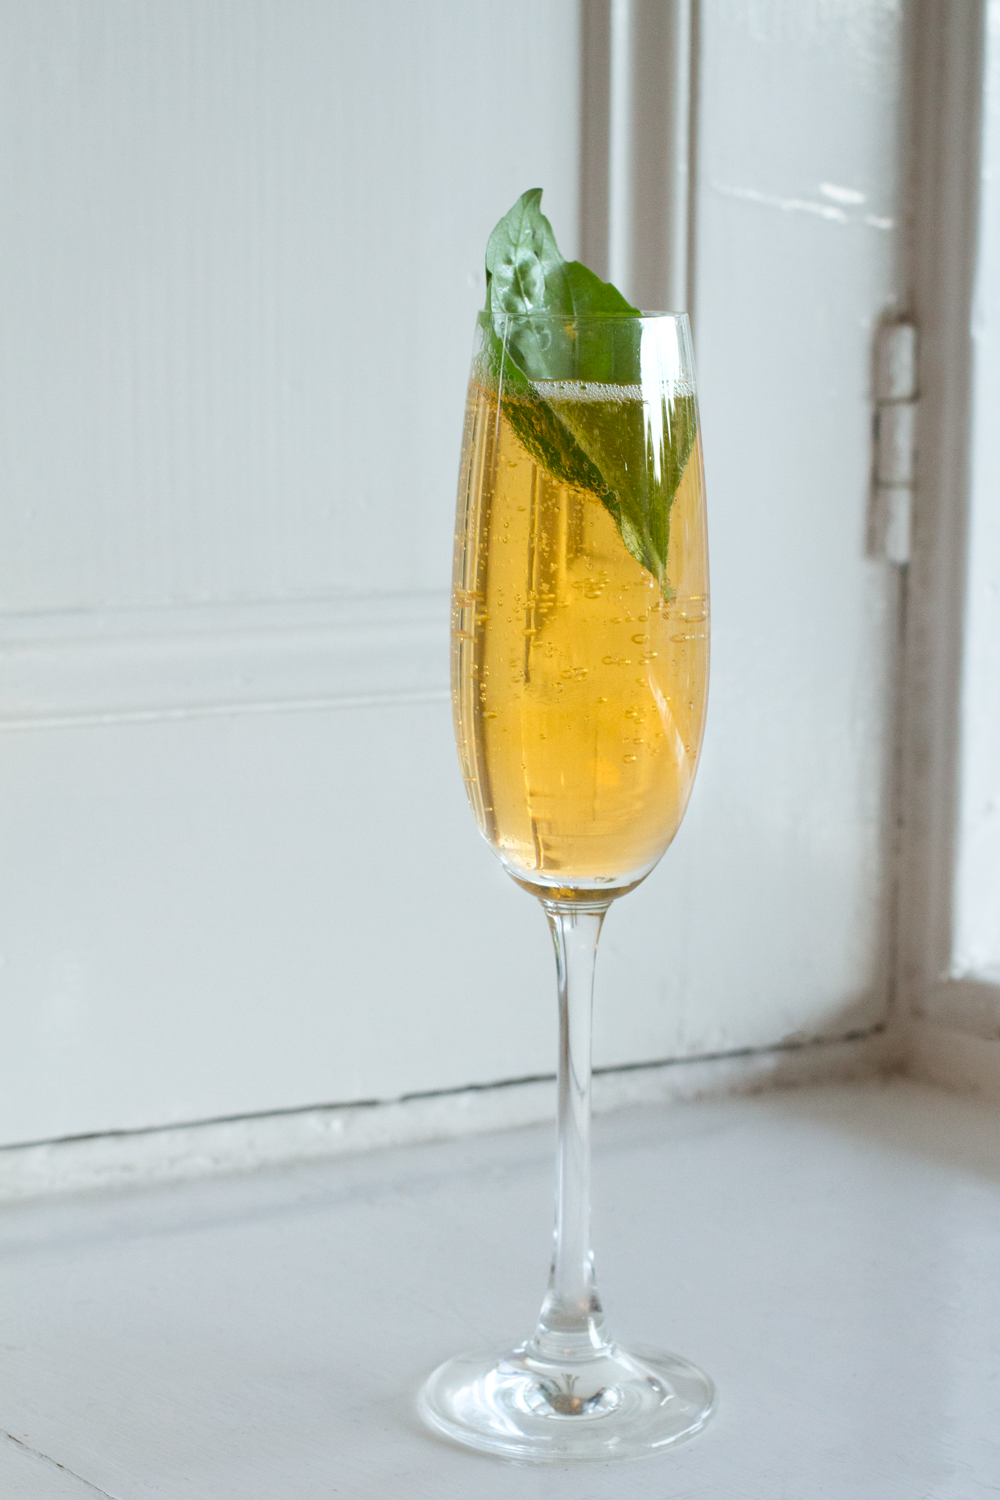 Bottle-Bitches-Cocktail Recipe for Bitches-Bubbles-Fino-Sherry-with-Sparkling-Wine-and-Apricot-and-basil